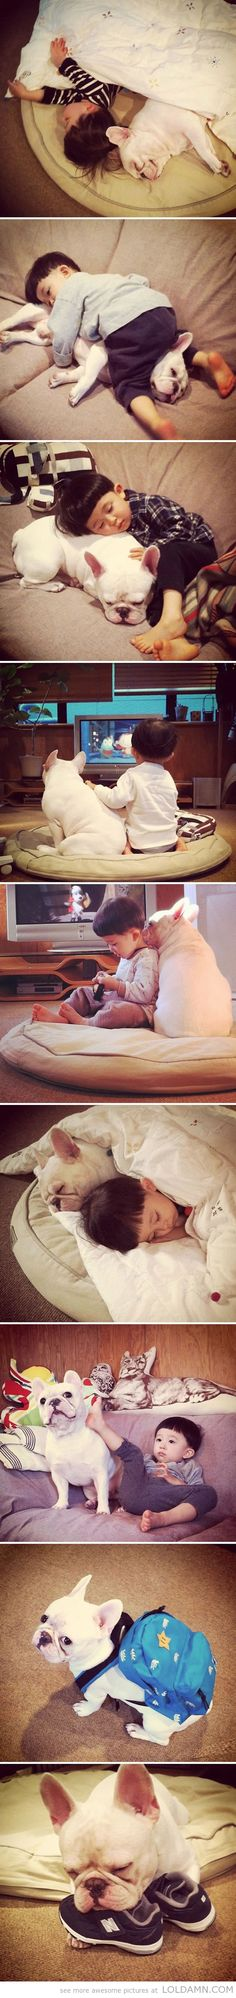 The sweetest friendship. #frenchie